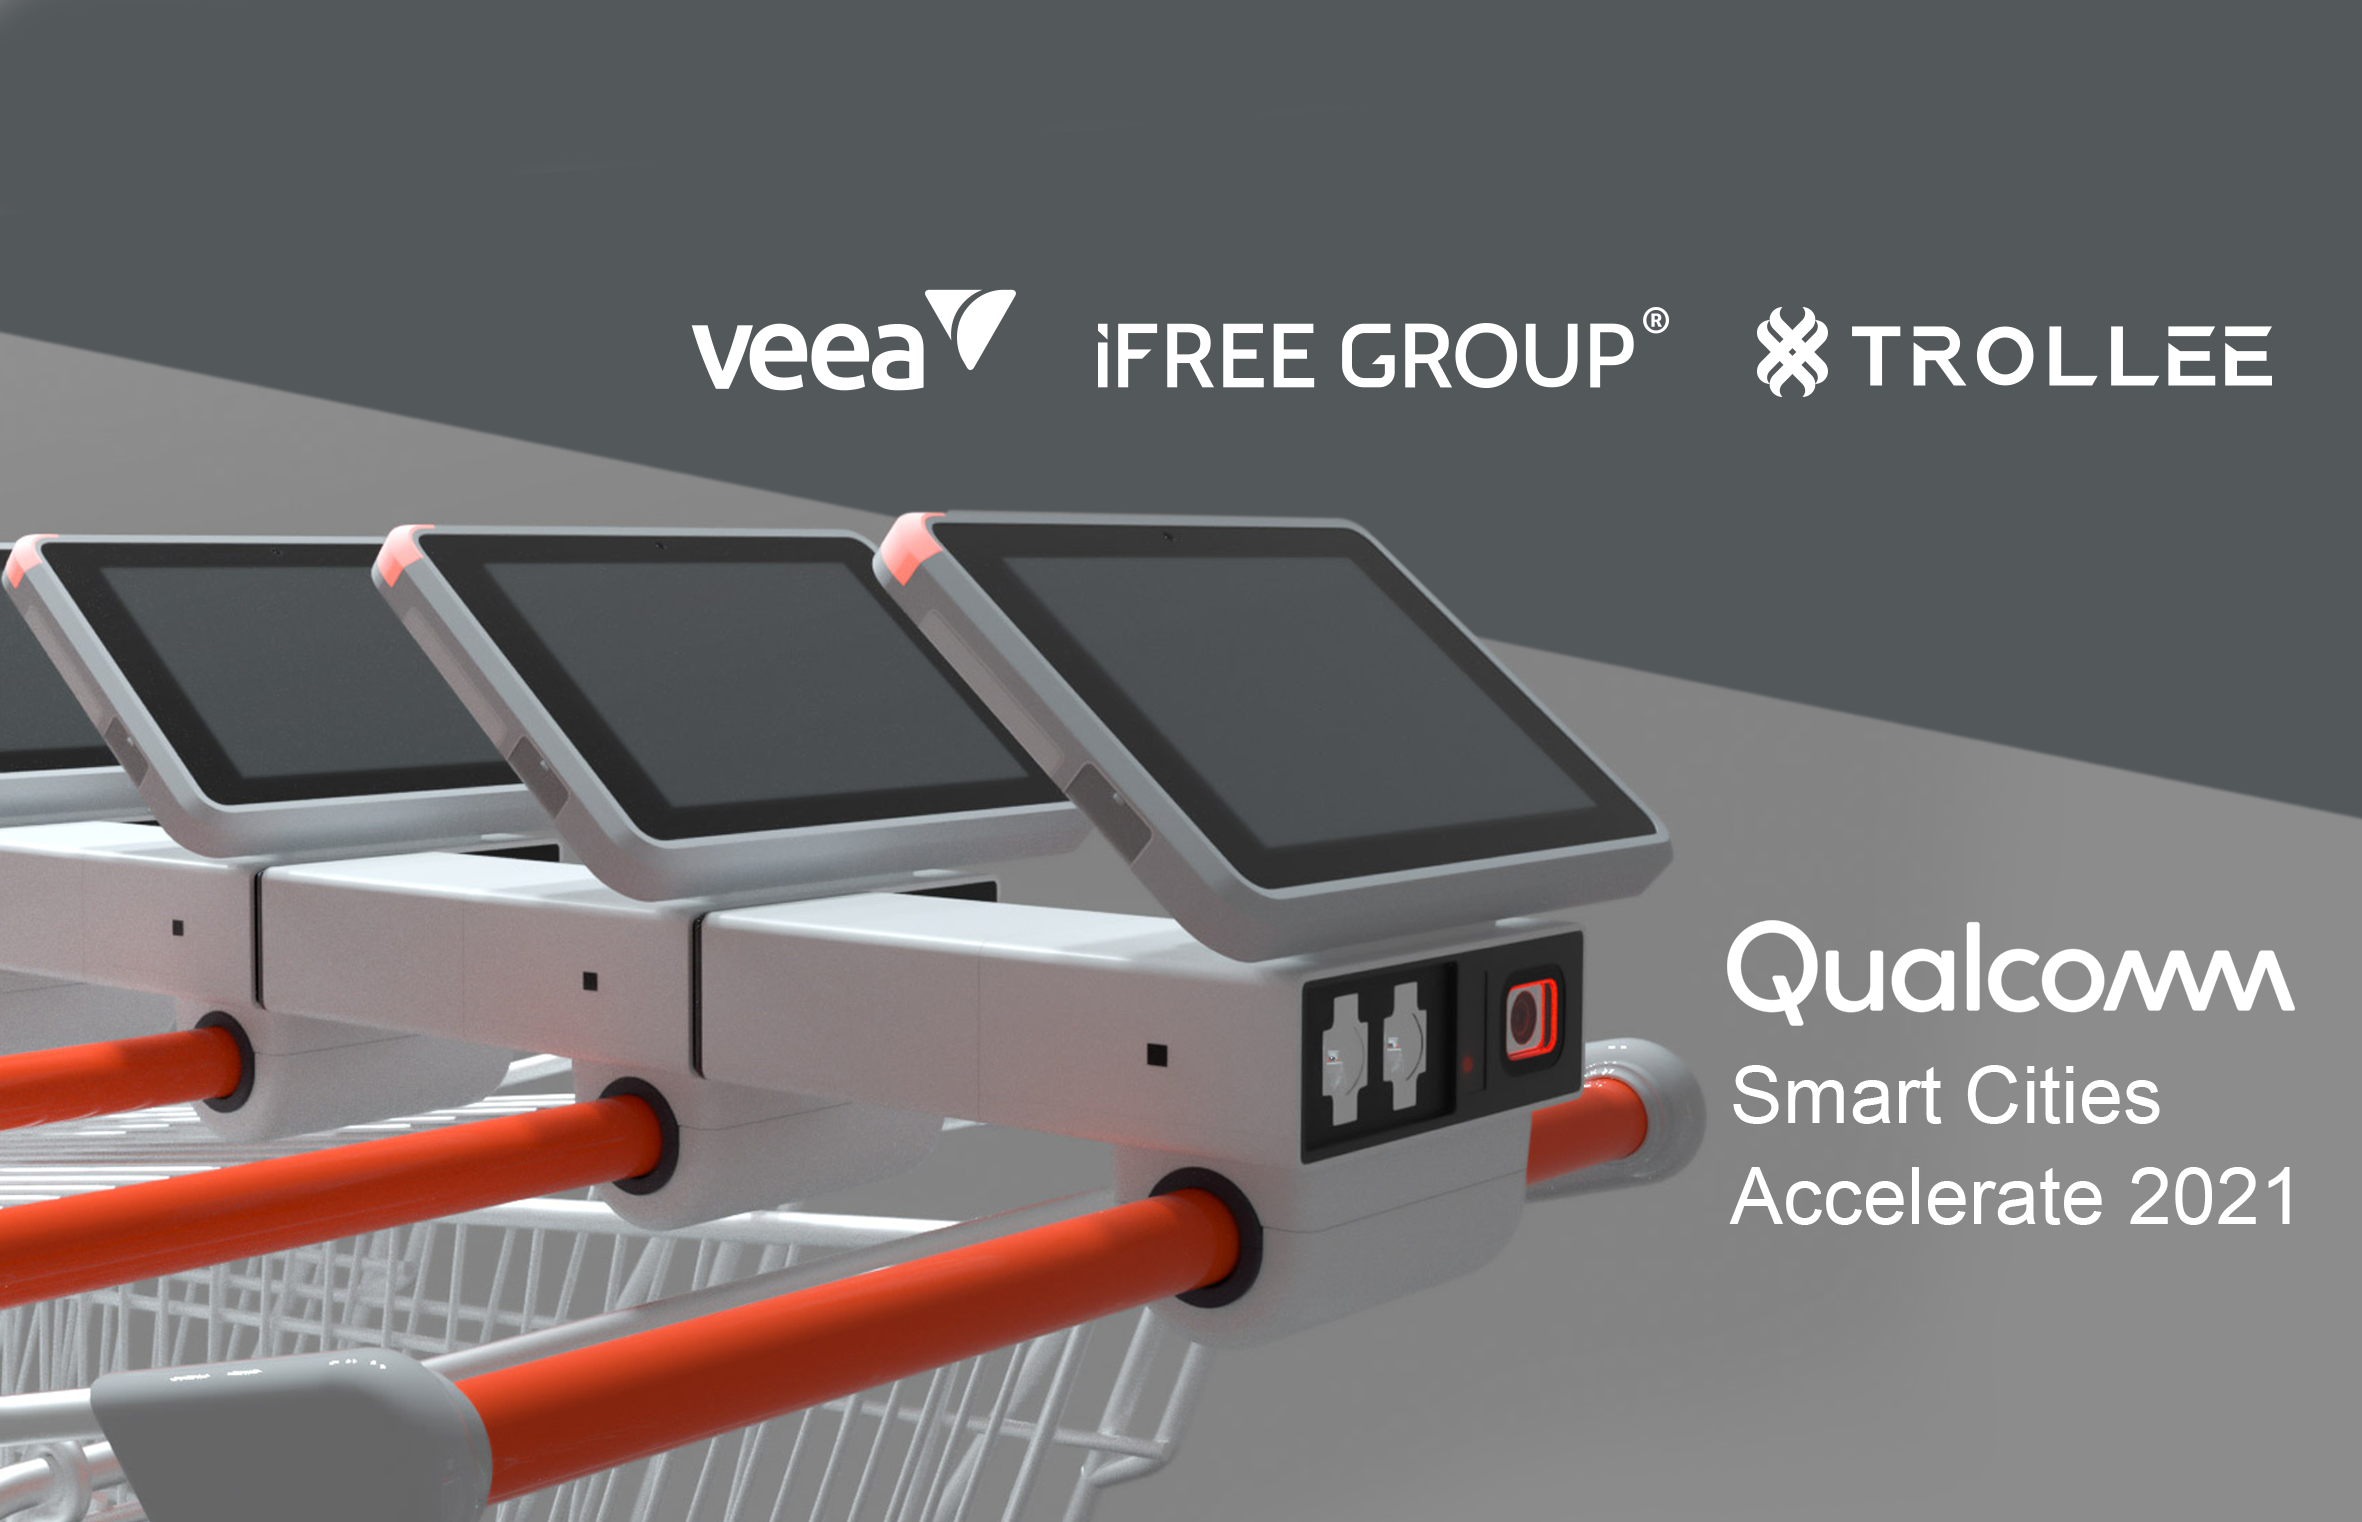 Veea Inc., iFREE GROUP's strategic partner and leader in integrated smart edge connectivity, computing, and security technologies are partnering up with iFREE GROUP on the newest product, TROLLEE. Today, we are glad to announce that we have launched TROLLEE, at Qualcomm's Smart Cities Accelerate 2021, a global customer